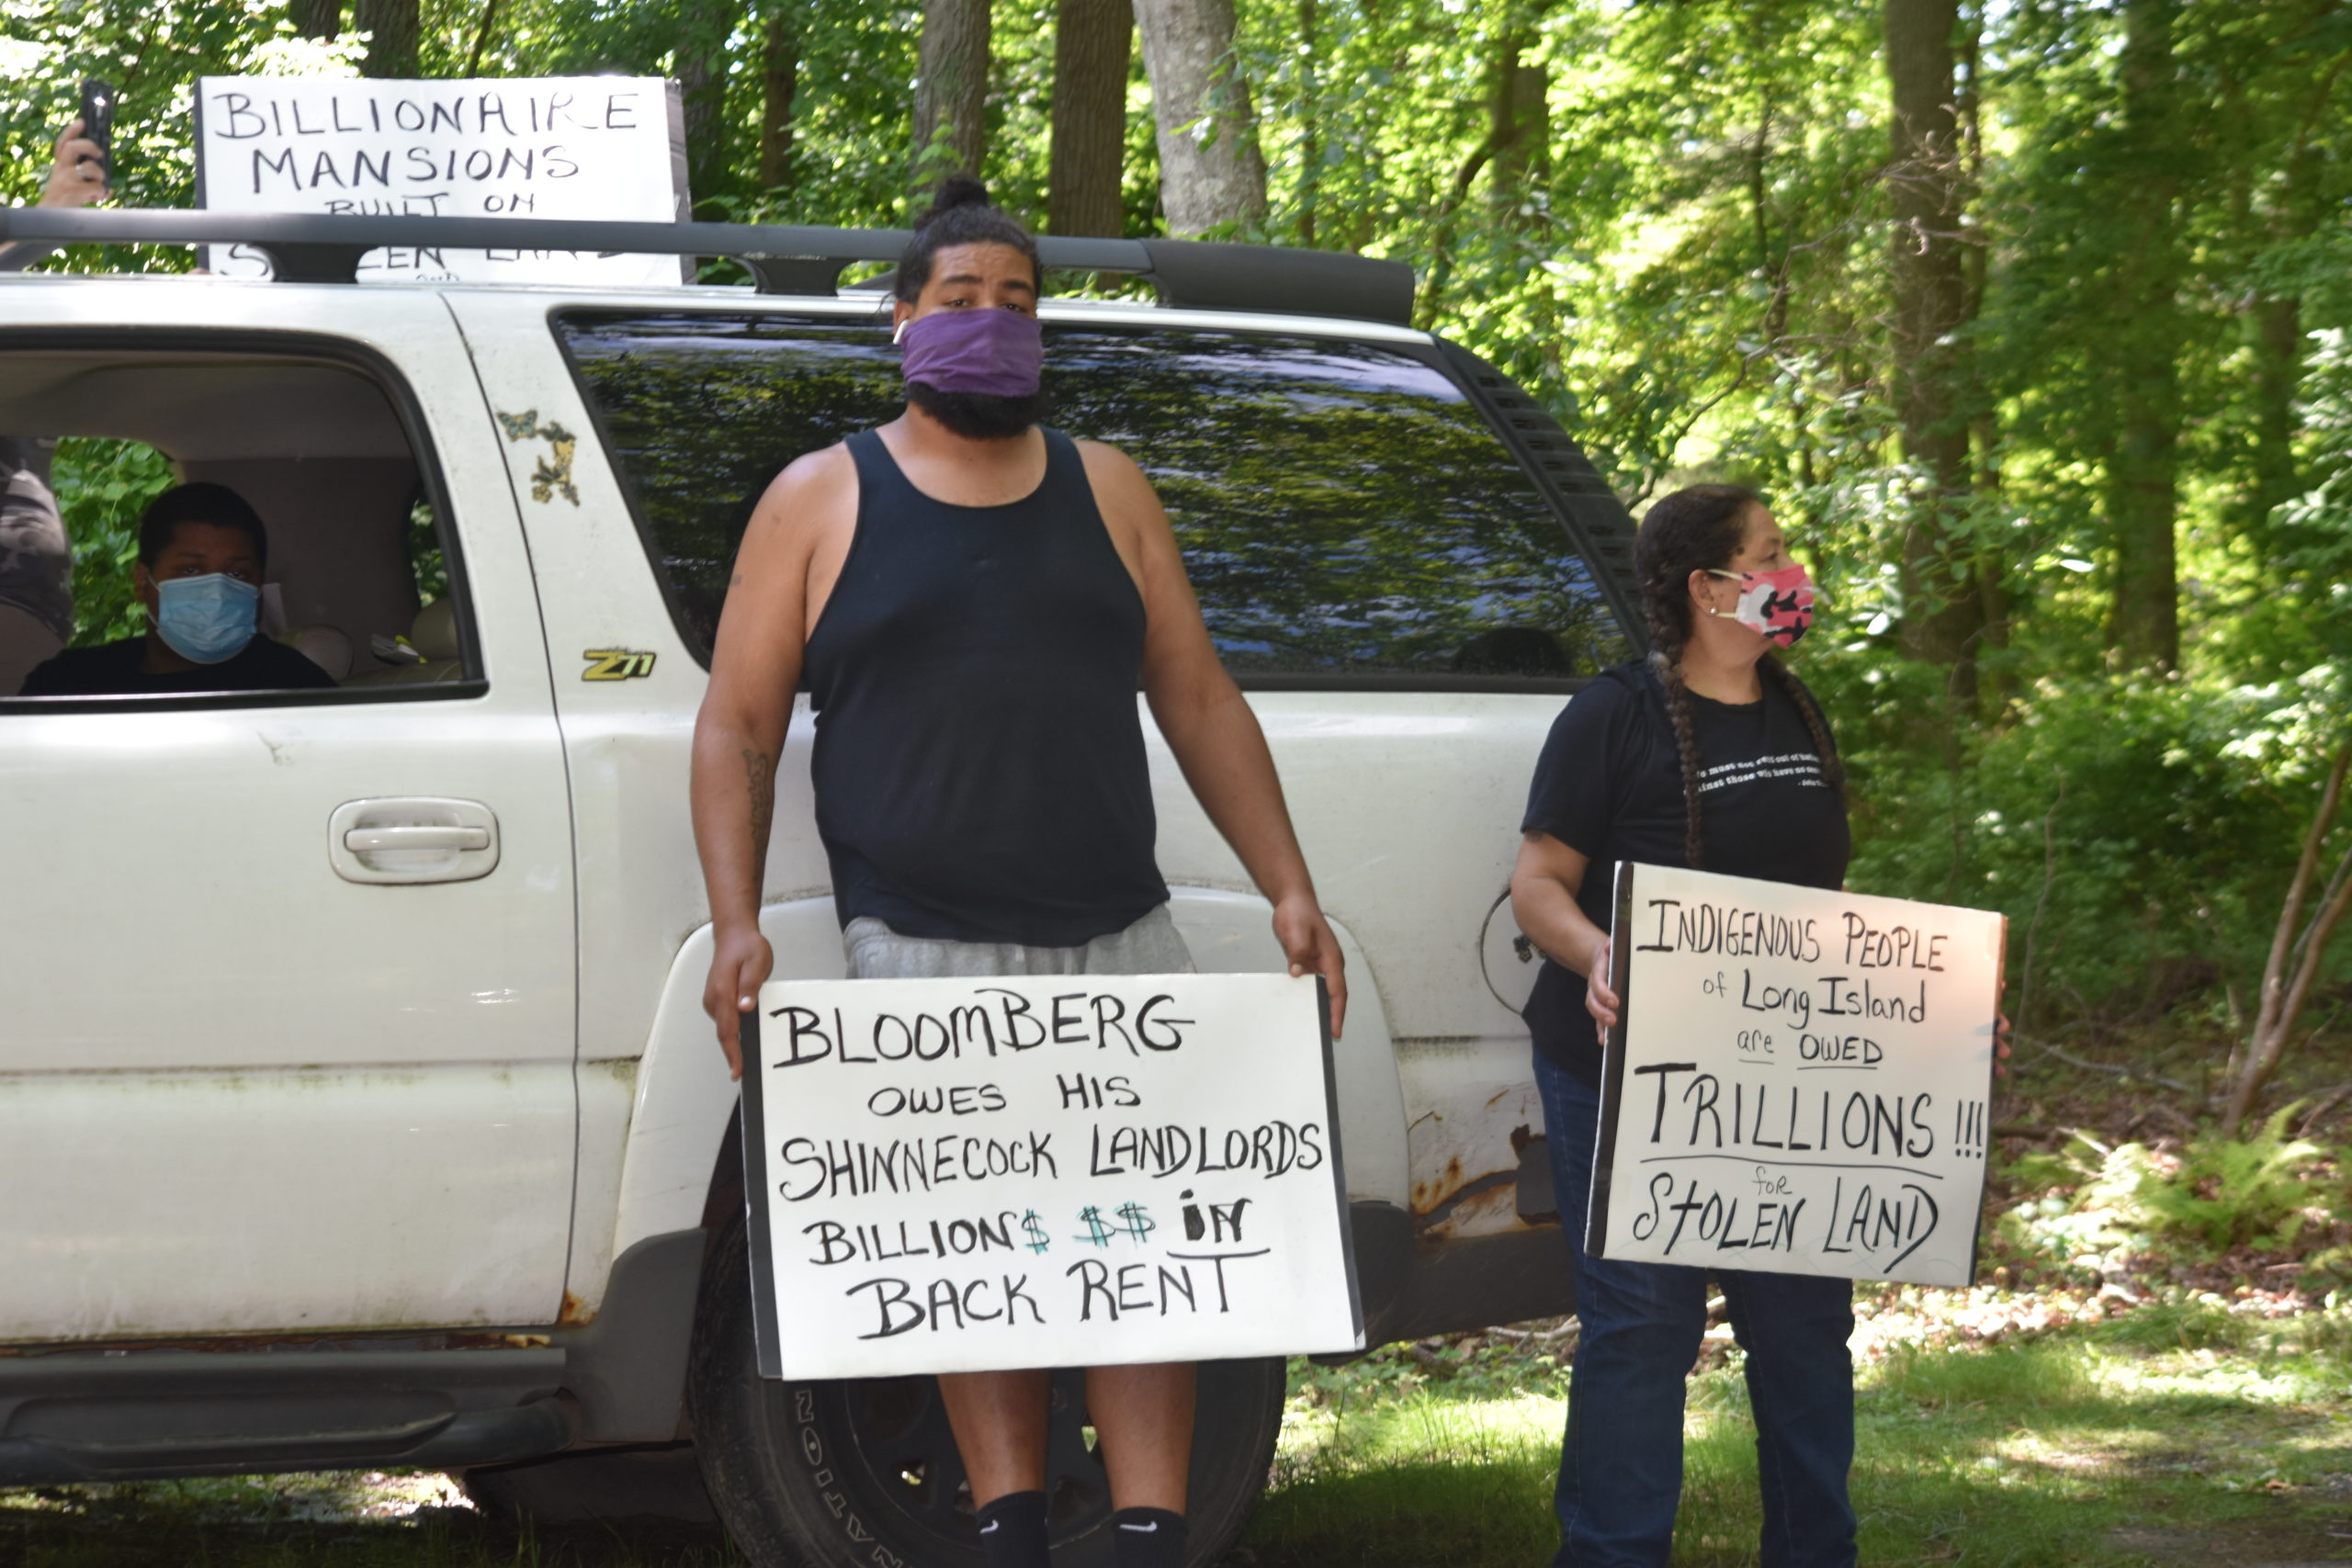 A protest caravan descened on the homes of East End billionaires, incluing the home of former New York City Mayor Michael Bloomberg, Wednesday with demonstrators demanding that Gov. Andrew Cuomo implement a wealth tax.